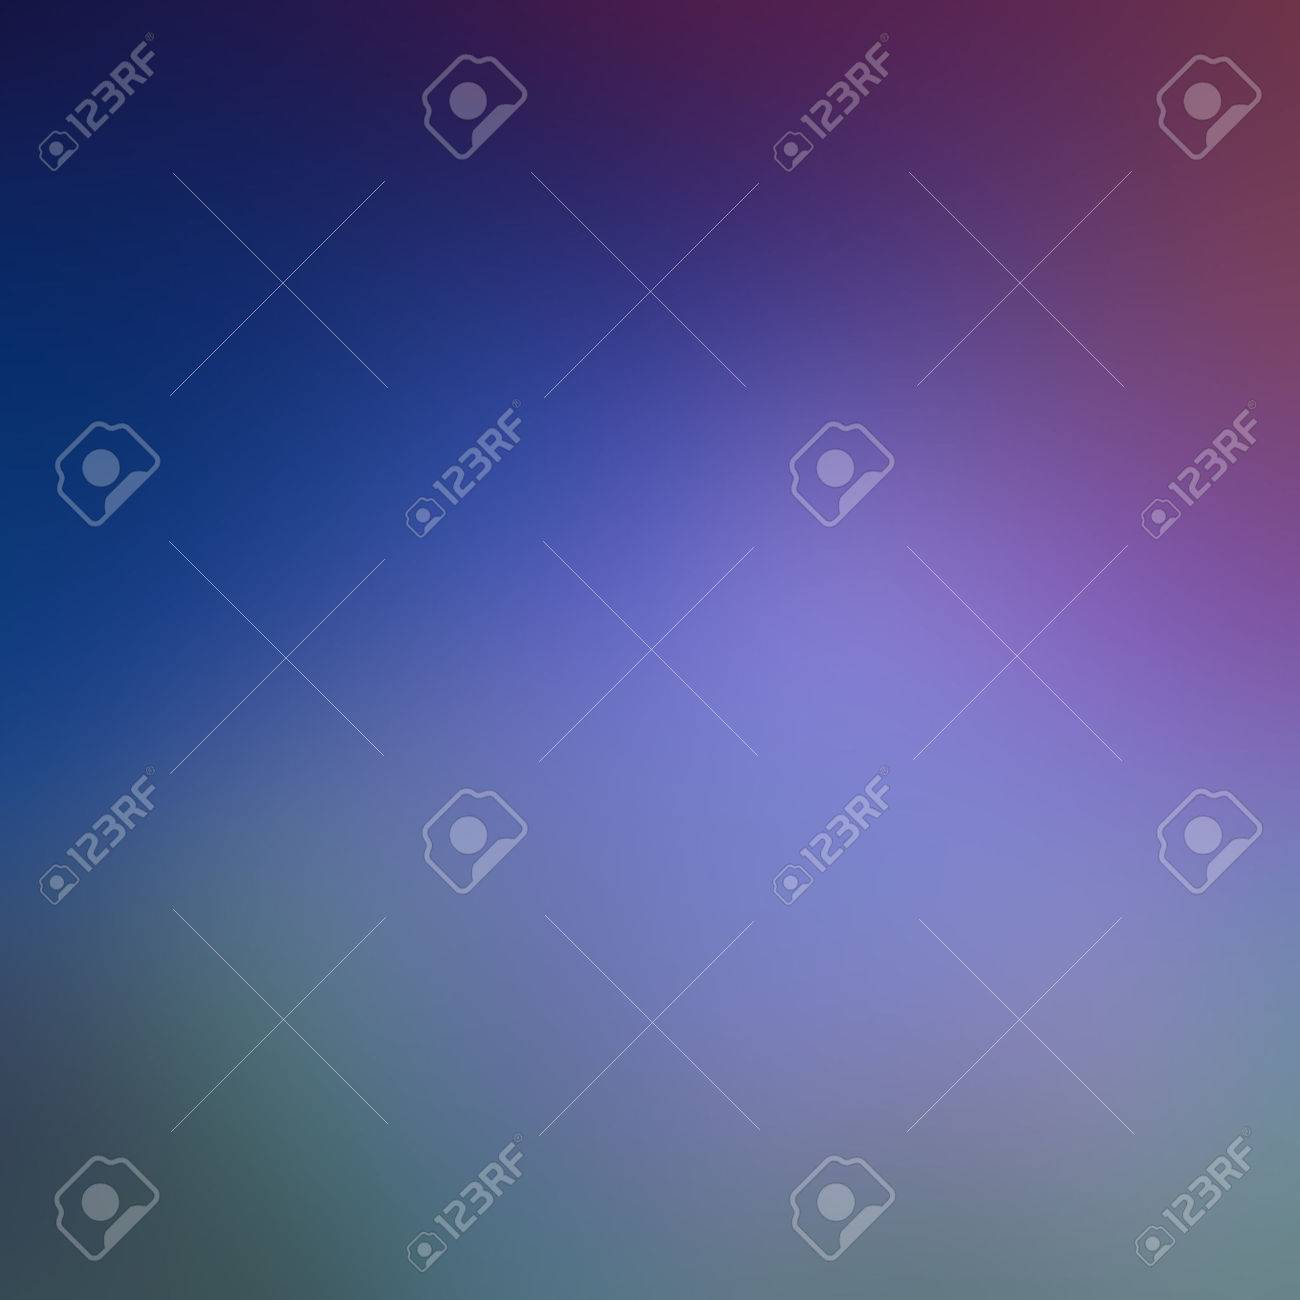 blurred blue and purple sky background, smooth gradient texture - 47207816